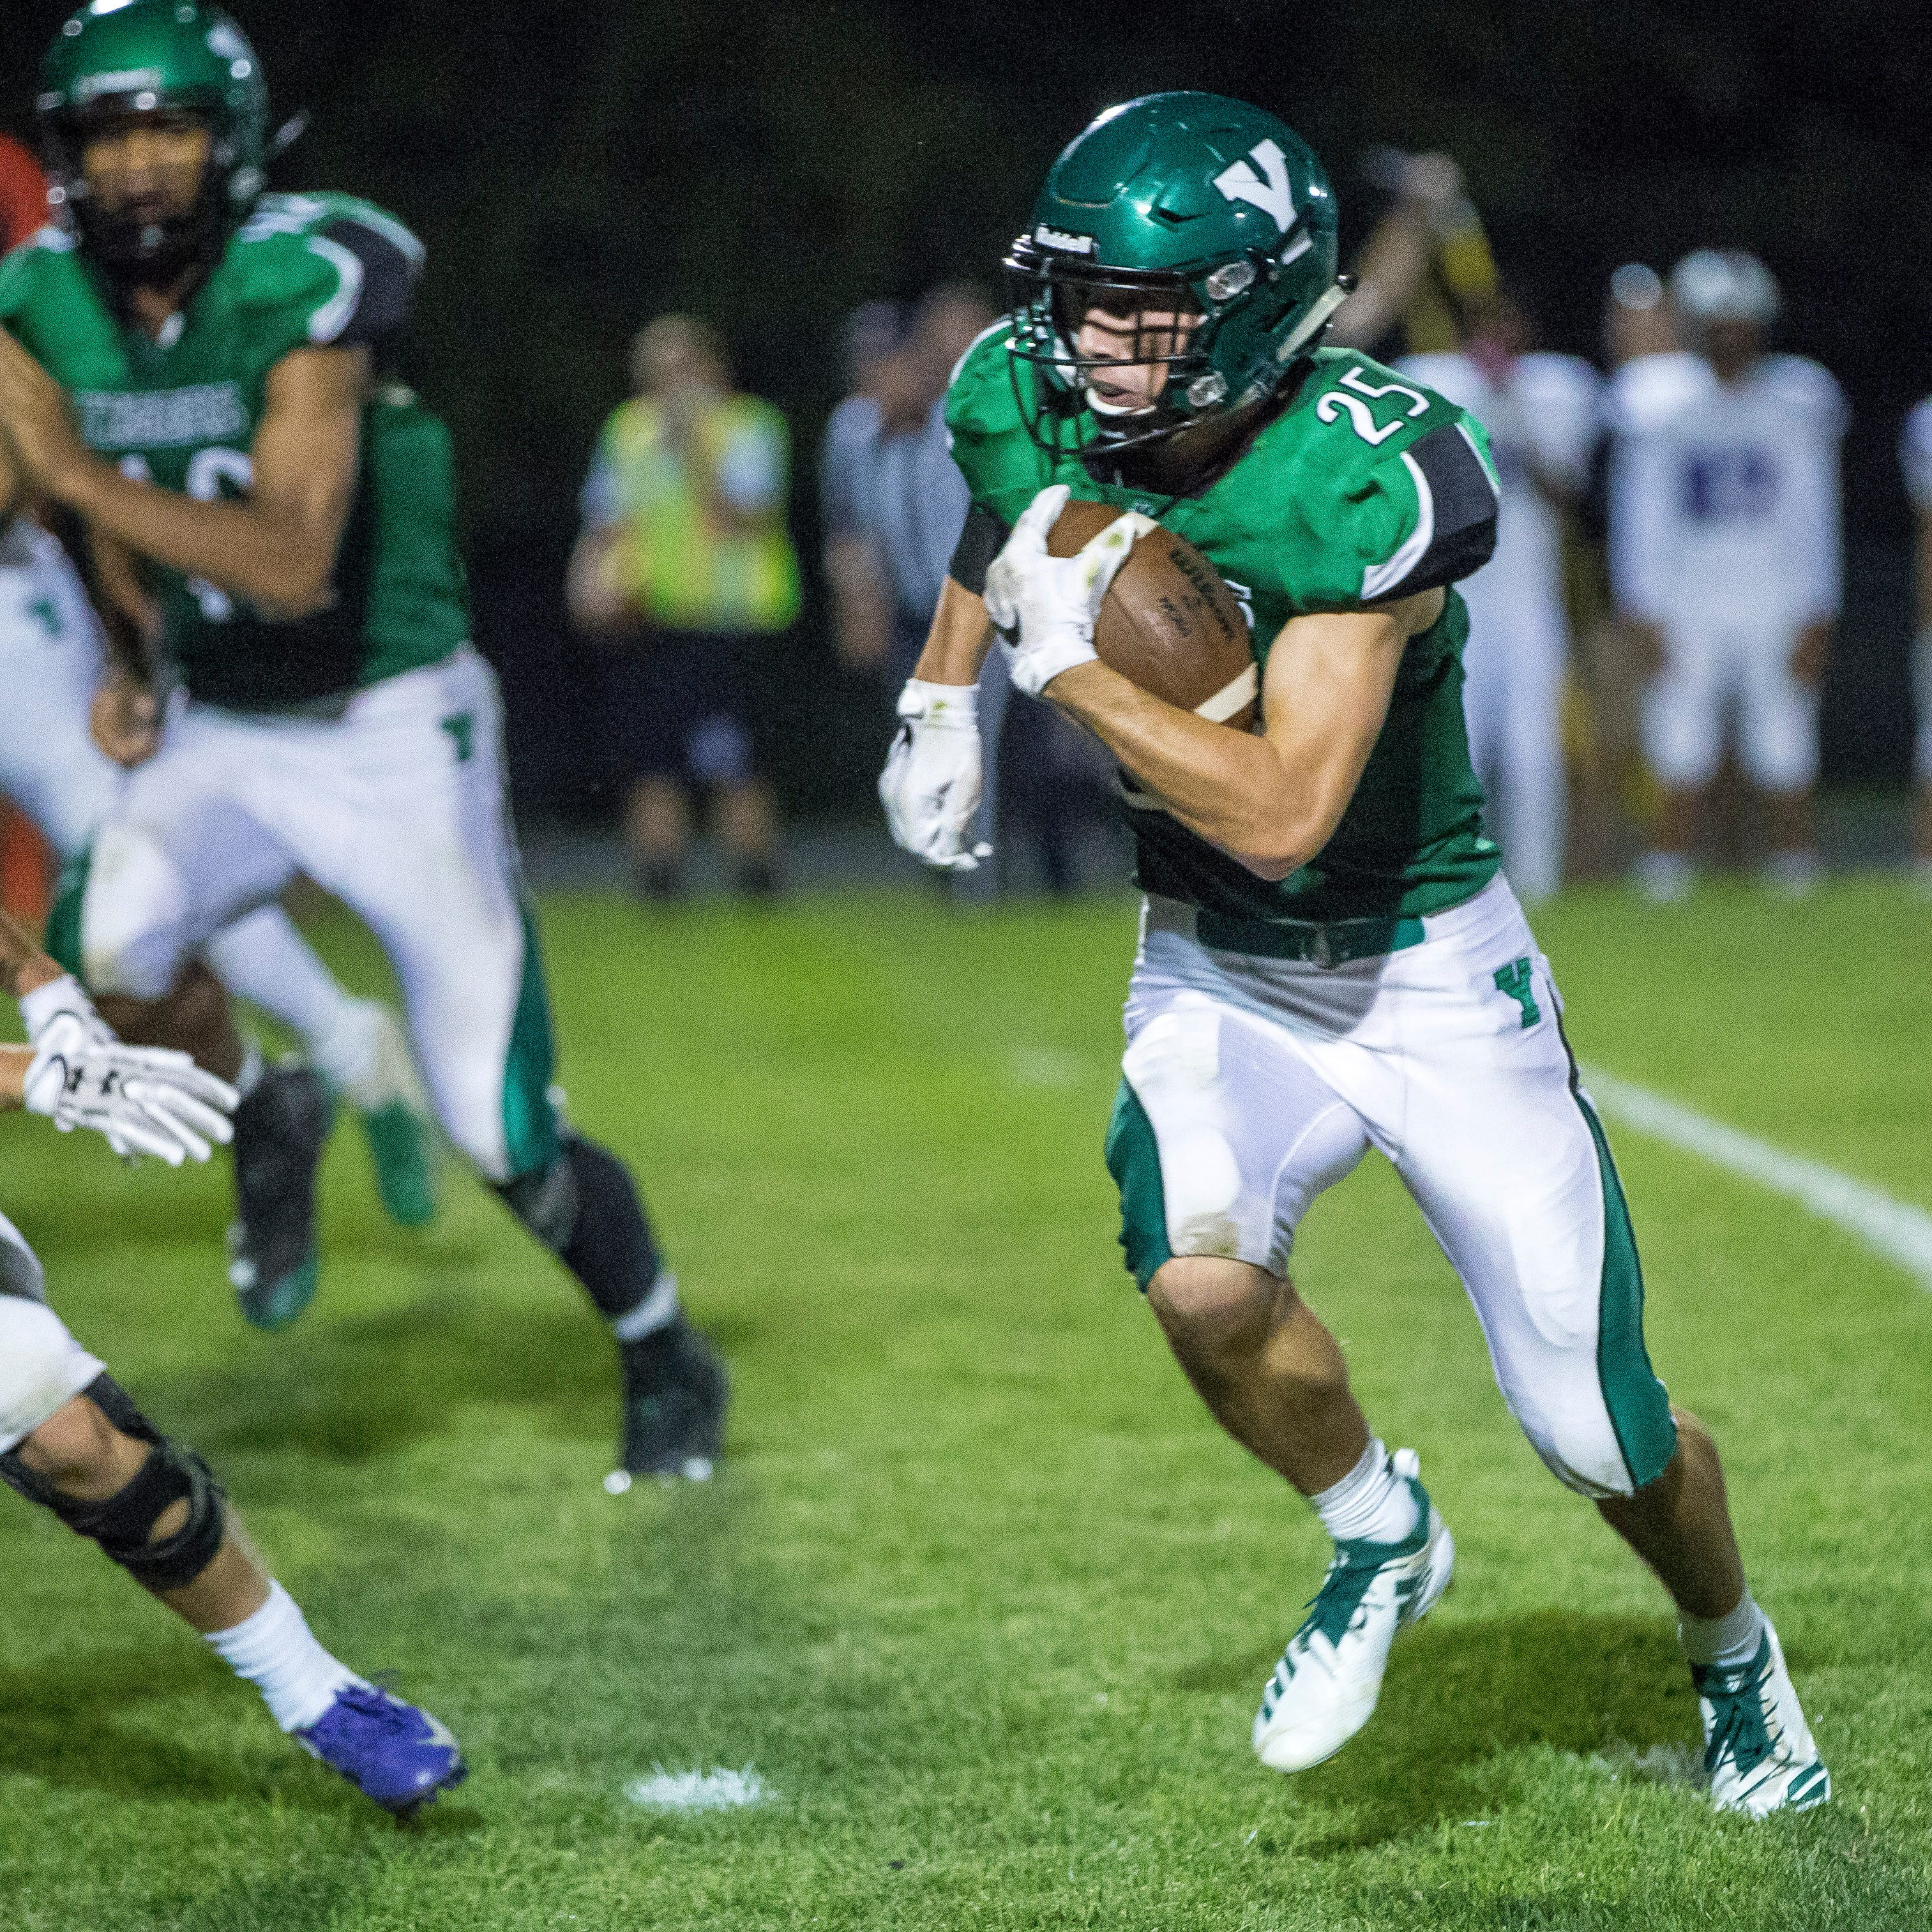 Announcing the final Star Press Football Player of the Week